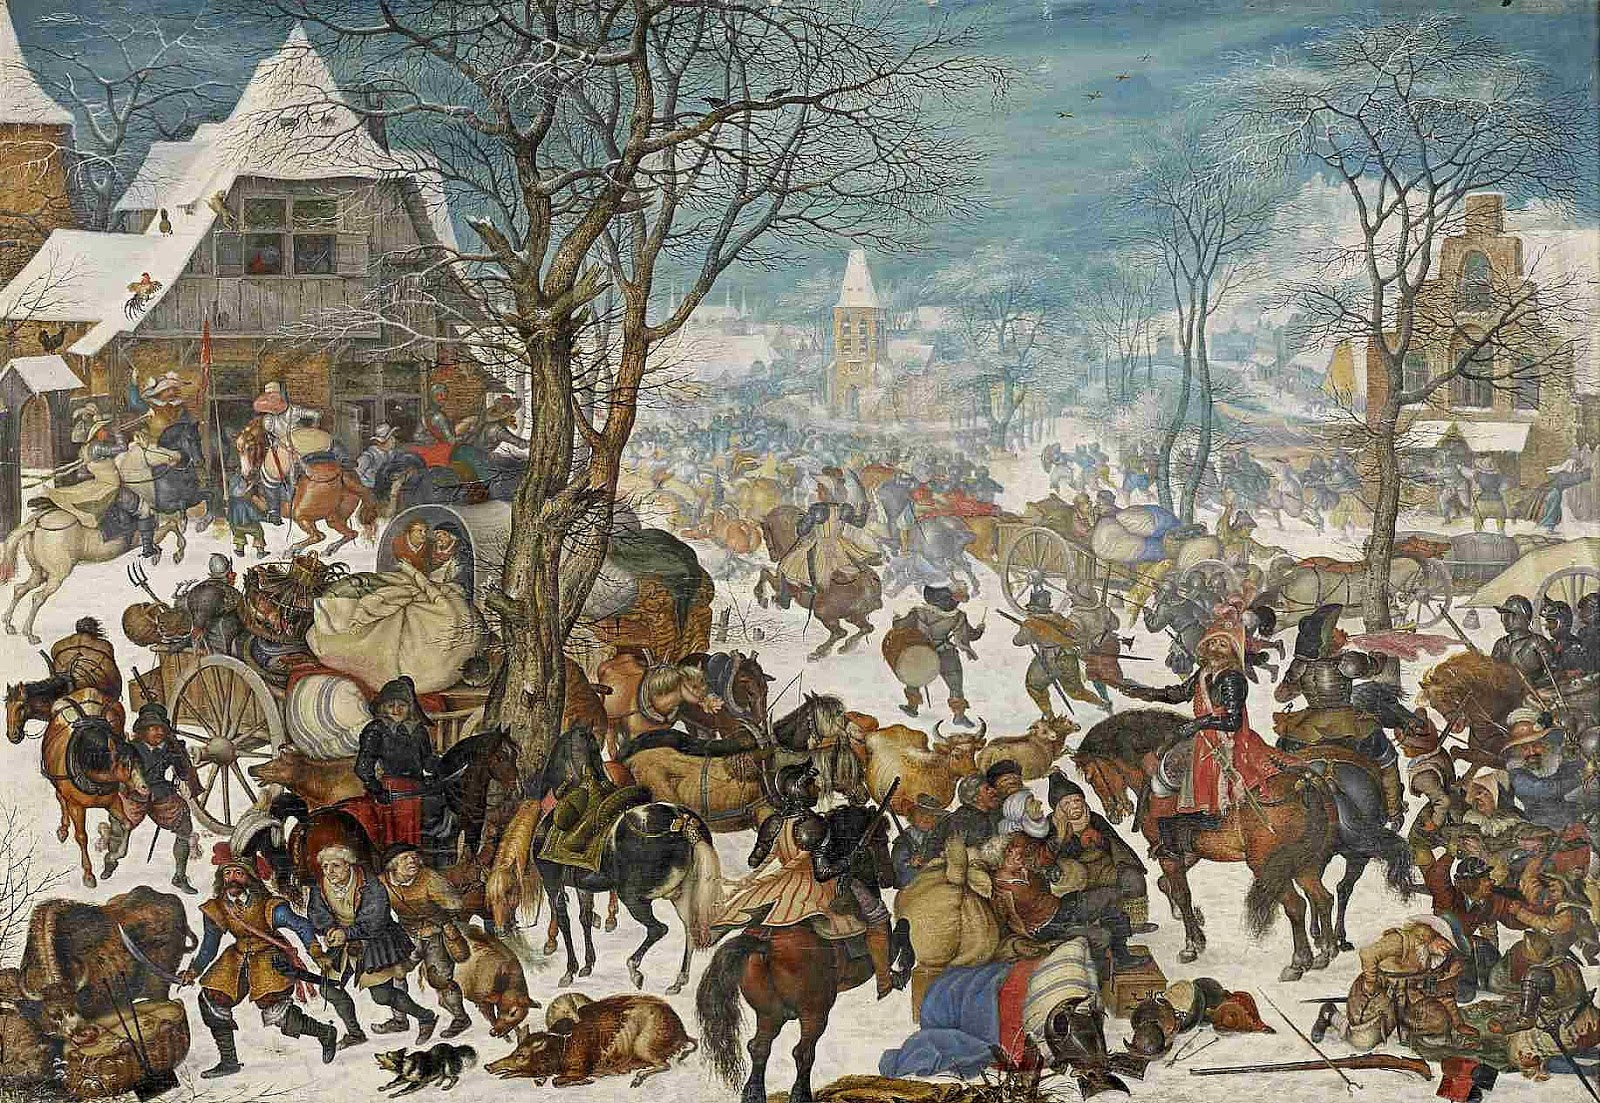 30 years war essay Bohemian rebellion and the thirty years war the thirty years war, unceasing from 1618 - 1648, stands as the longest war in modern day history and significantly altered western europe in religious, political and social ways.